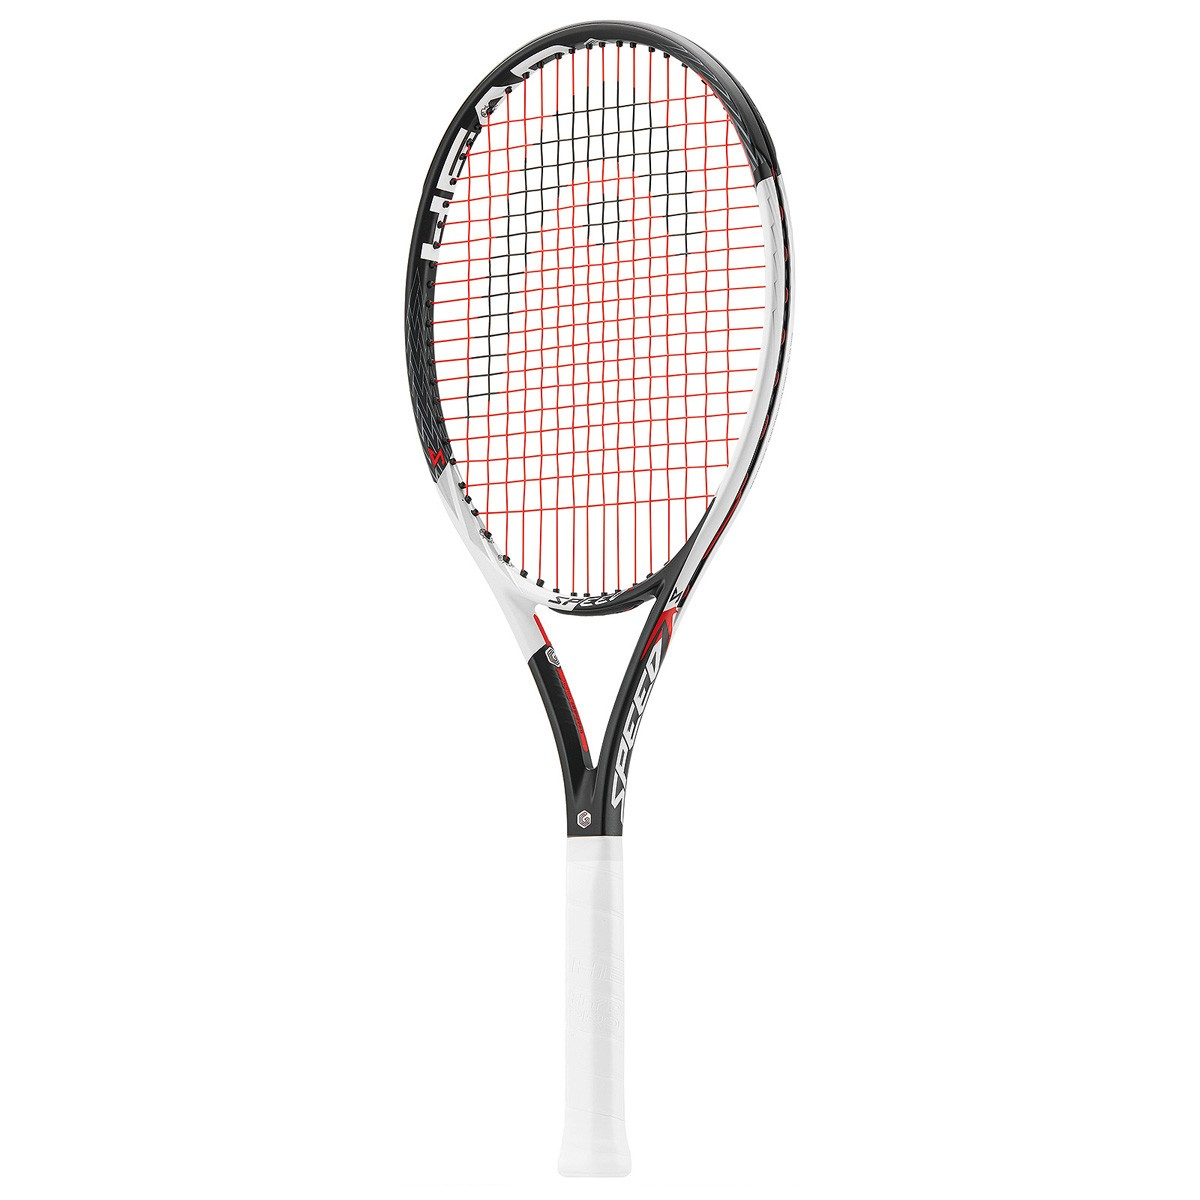 Rakieta tenisowa Head Graphene Touch Speed S + Lynx